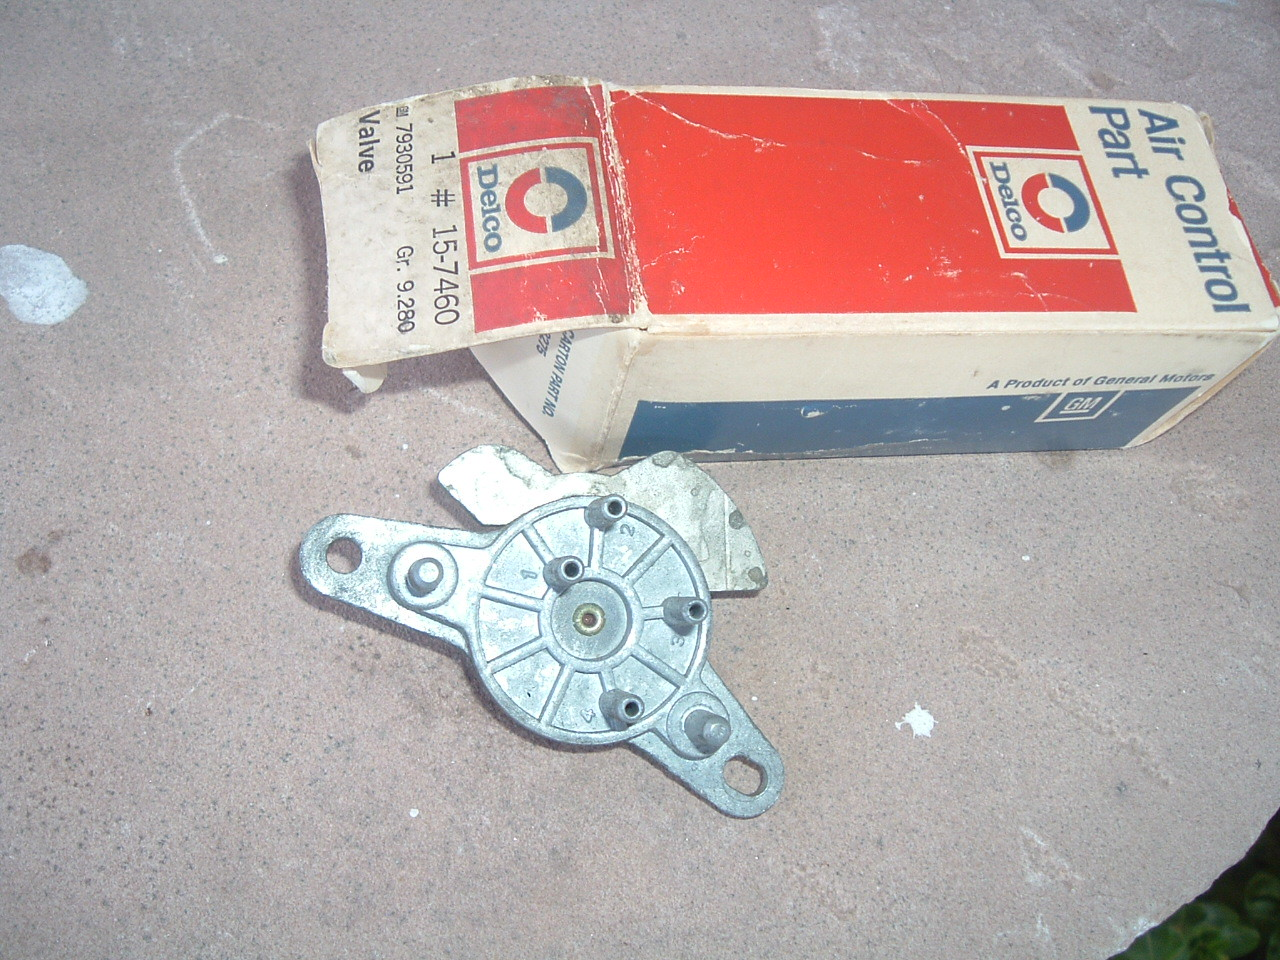 View Product1971 72 73 74 75 chevrolet buick pontiac air conditioning vacuum switch nos gm 7930591 (z 7930591)